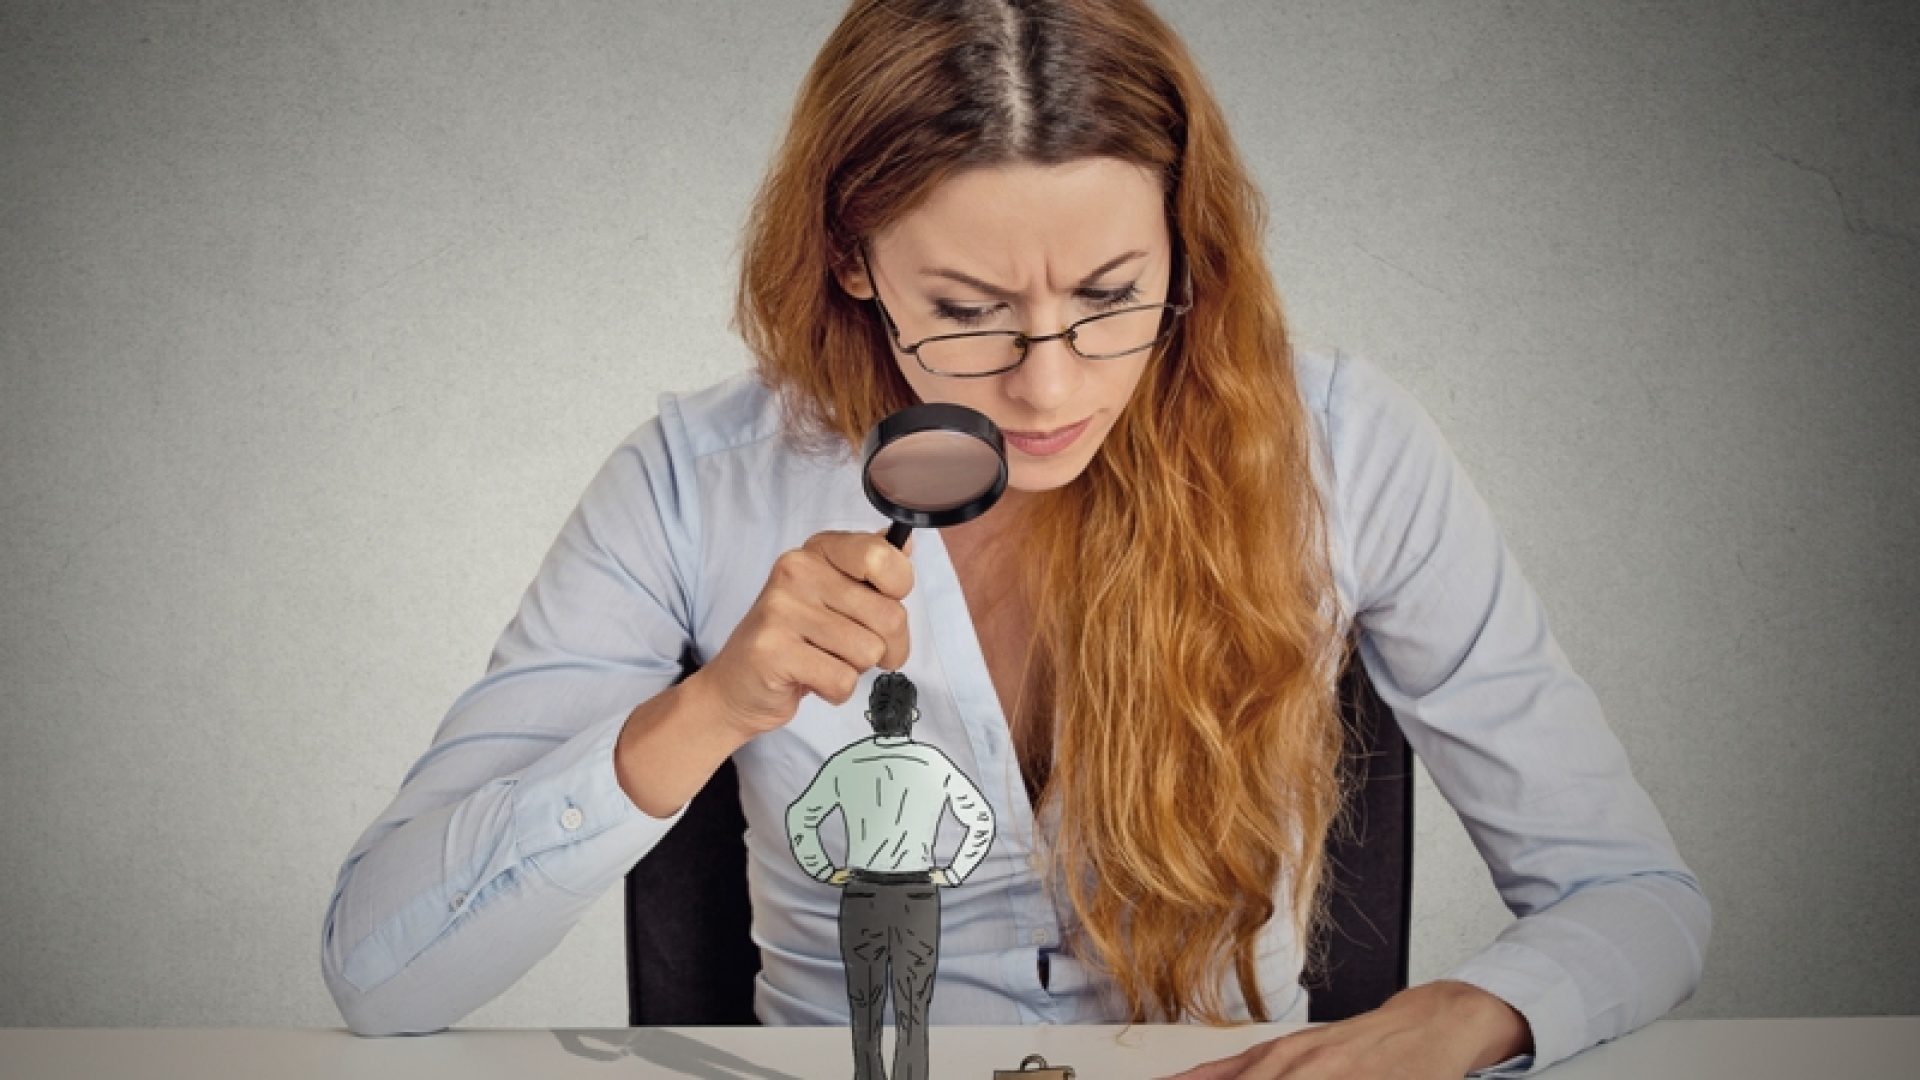 http://www.dreamstime.com/royalty-free-stock-photos-businesswoman-skeptically-looking-small-employee-magnifying-glass-curious-corporate-meeting-standing-table-isolated-image48999558